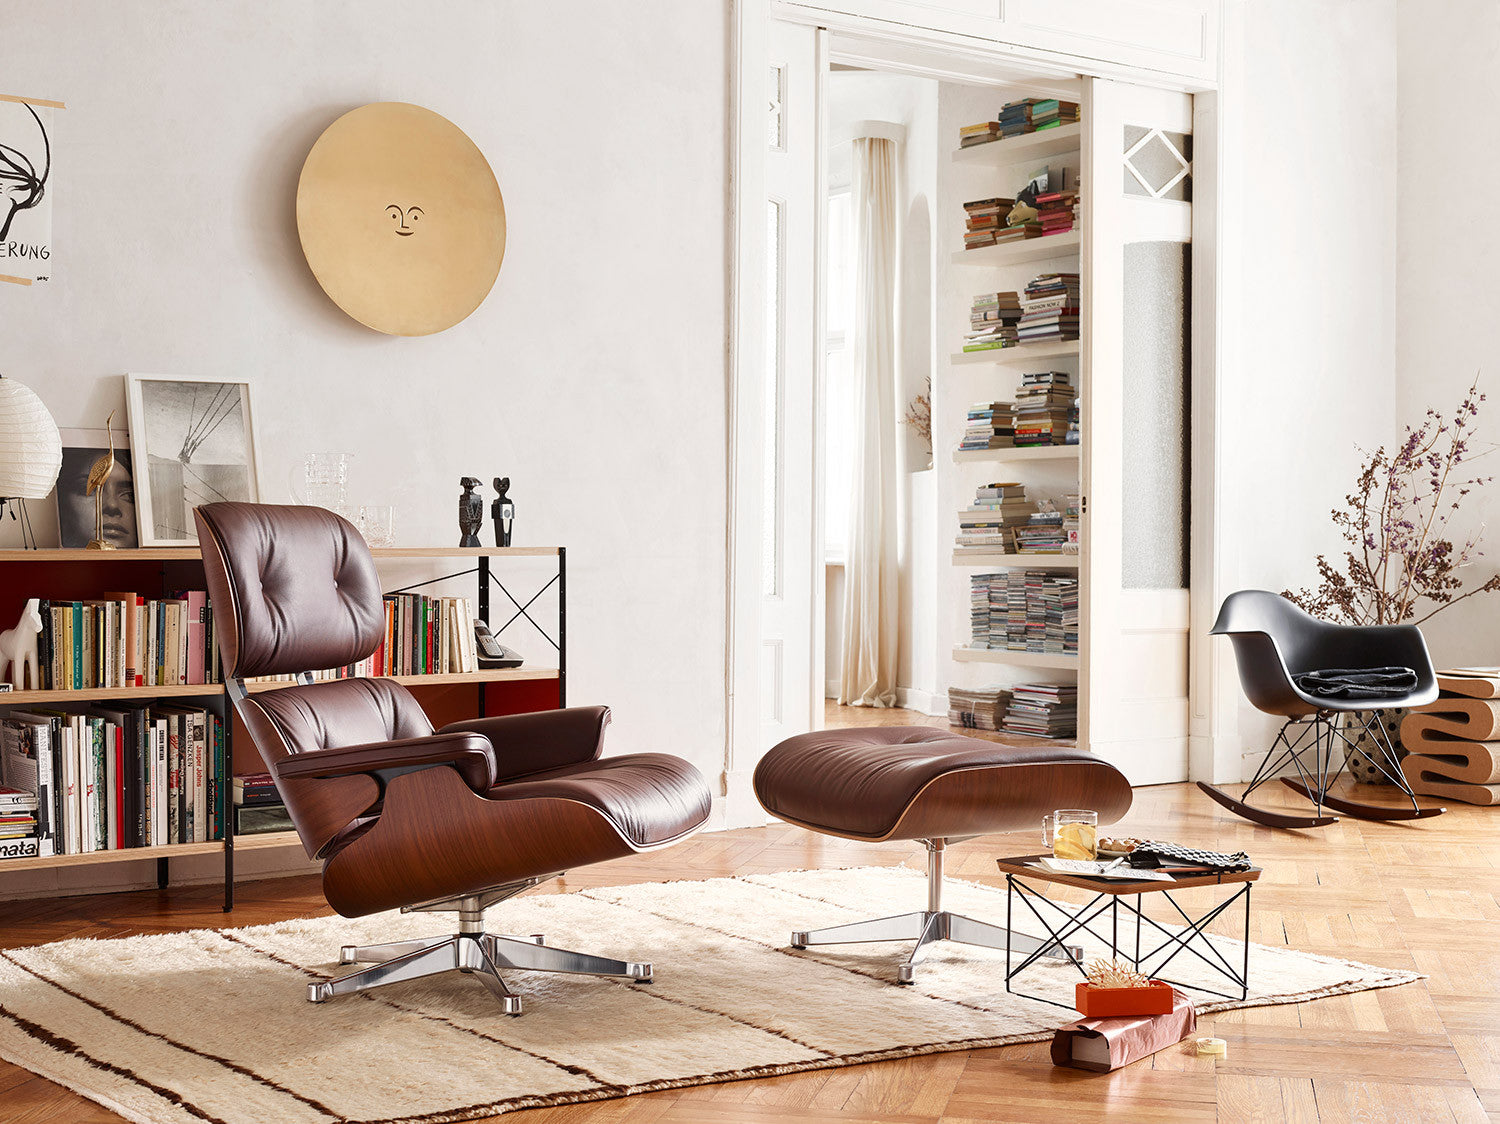 Eames Lounge Chair And Ottoman Walnut Black Pigmented   Winter Edition, RAR  Chair And Occasional Table LTR ...